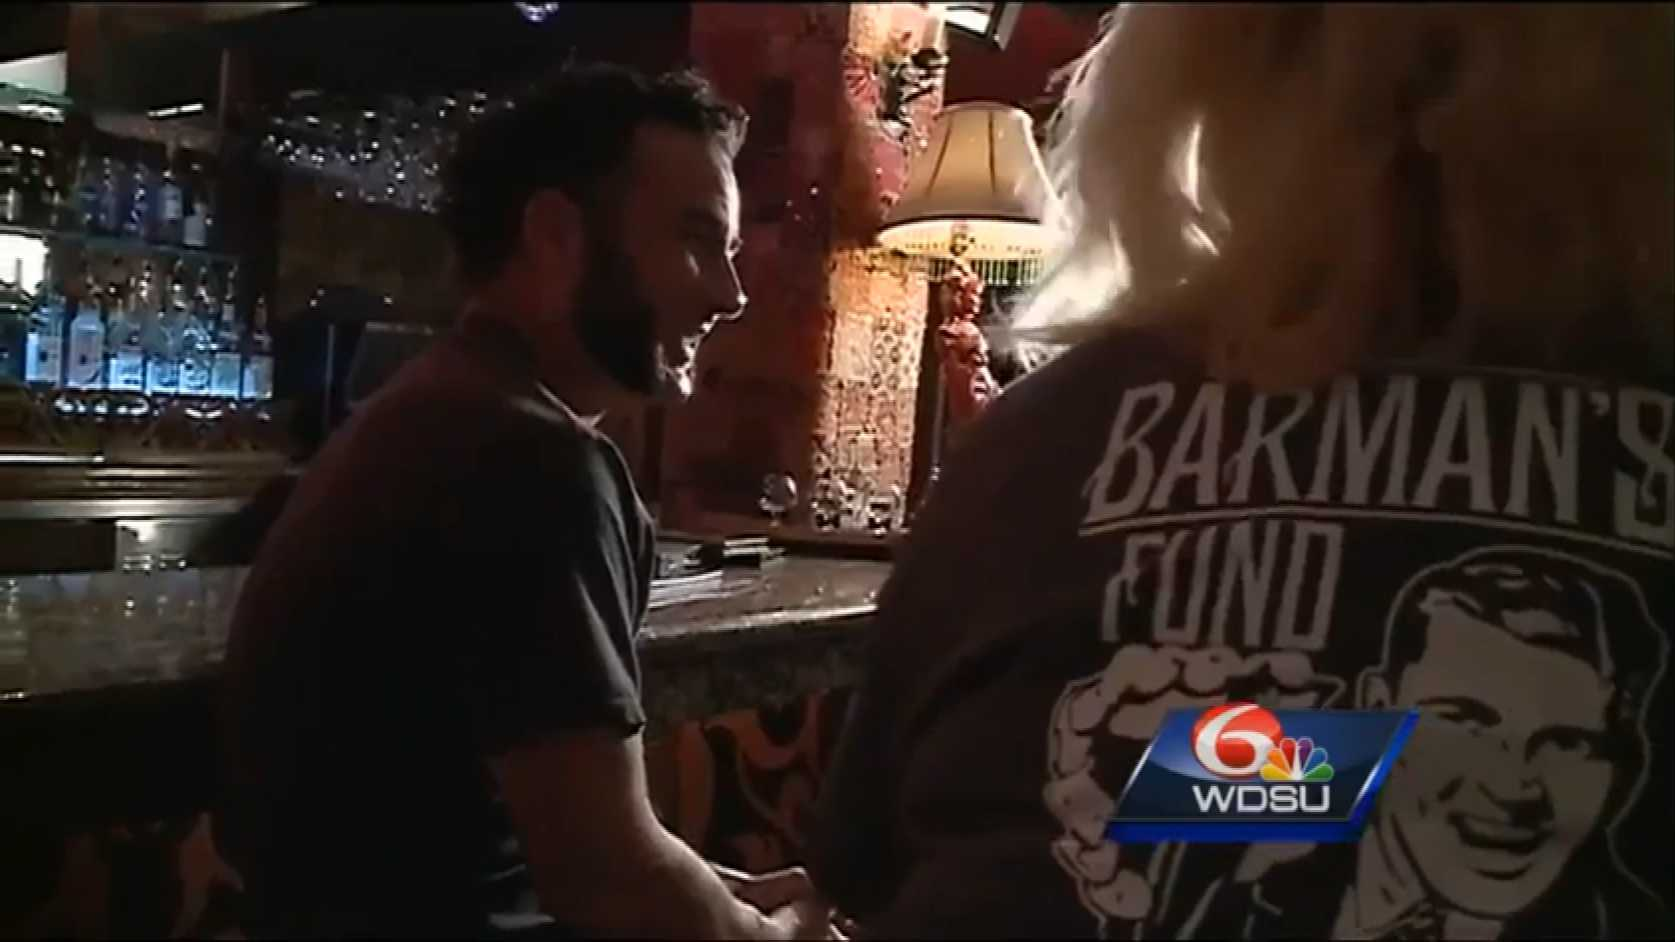 The Barman's Fund in New Orleans works with about 150 bartenders to give back to the community.